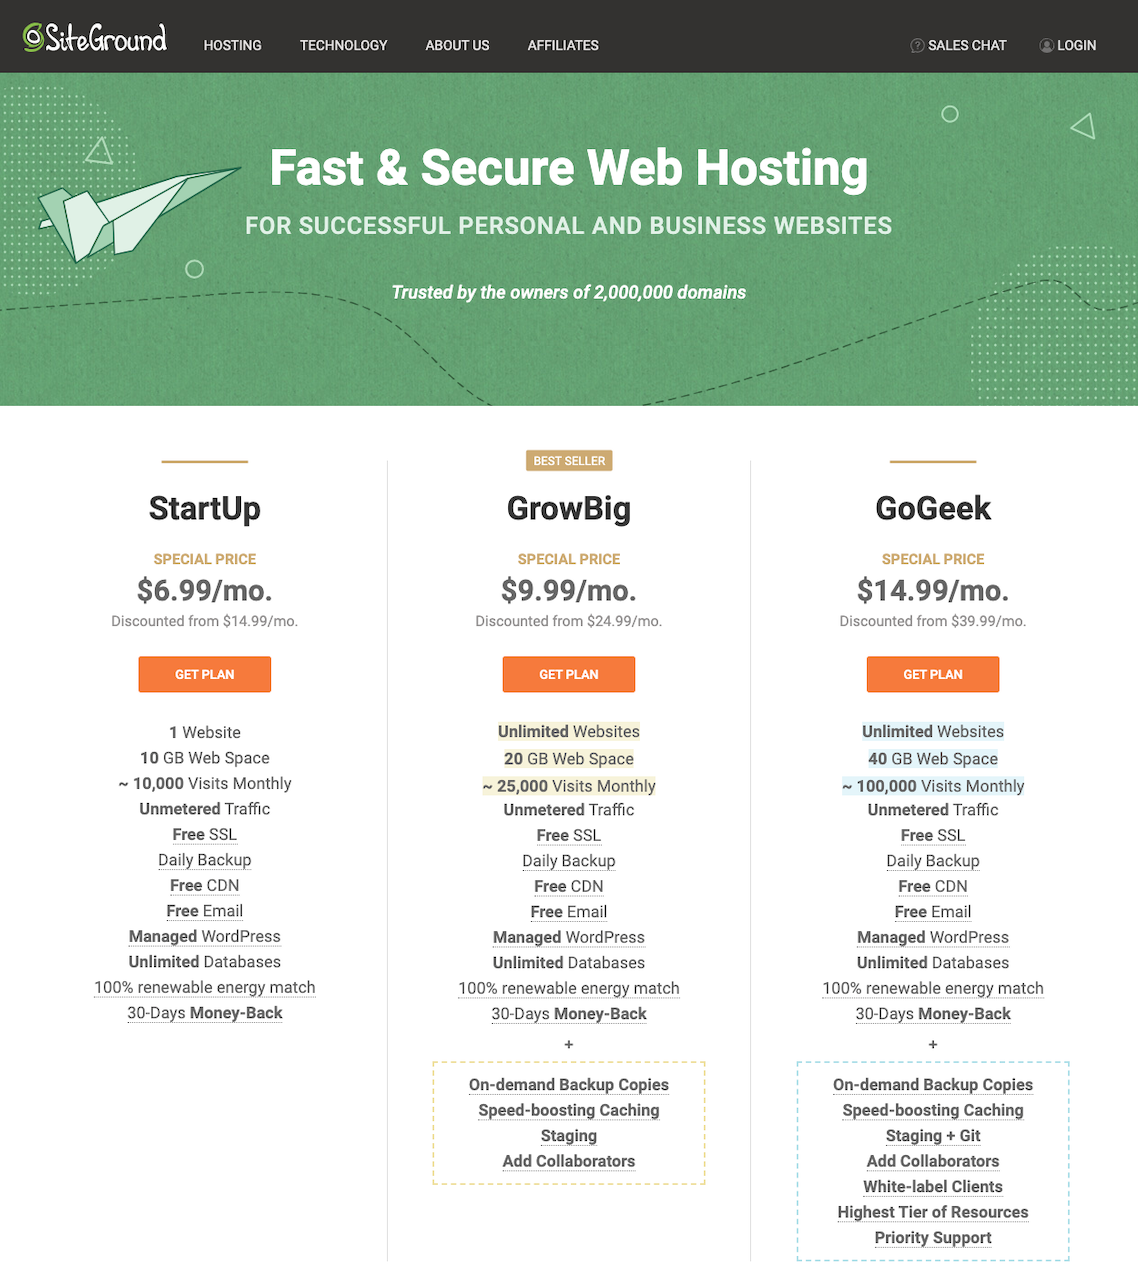 Siteground Hosting Charges. Courtesy: Siteground.com